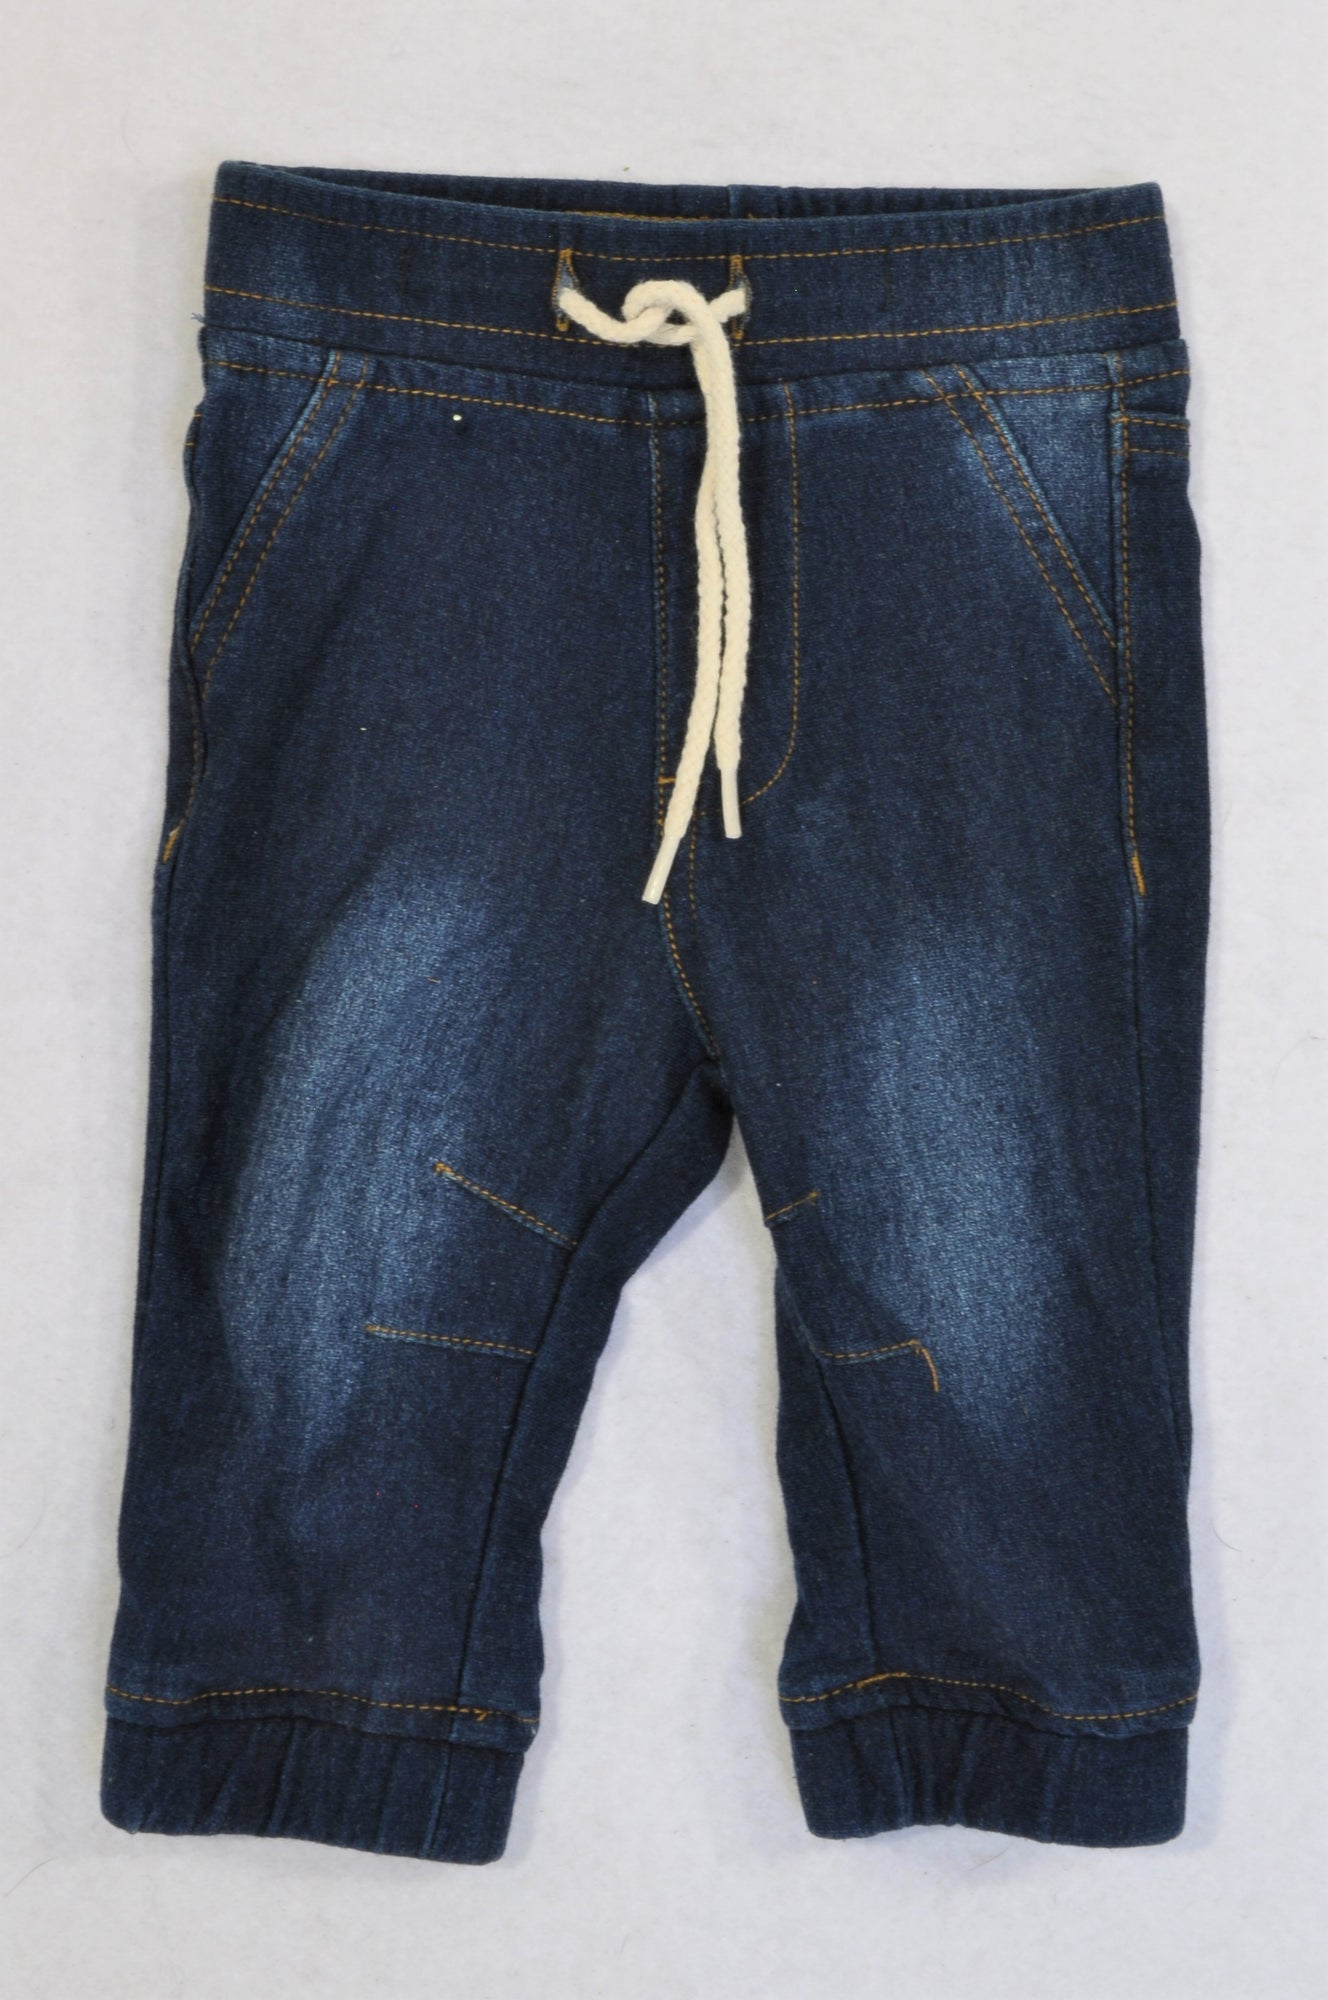 Exact Dark Denim Cuffed Tie Pants Unisex 3-6 months